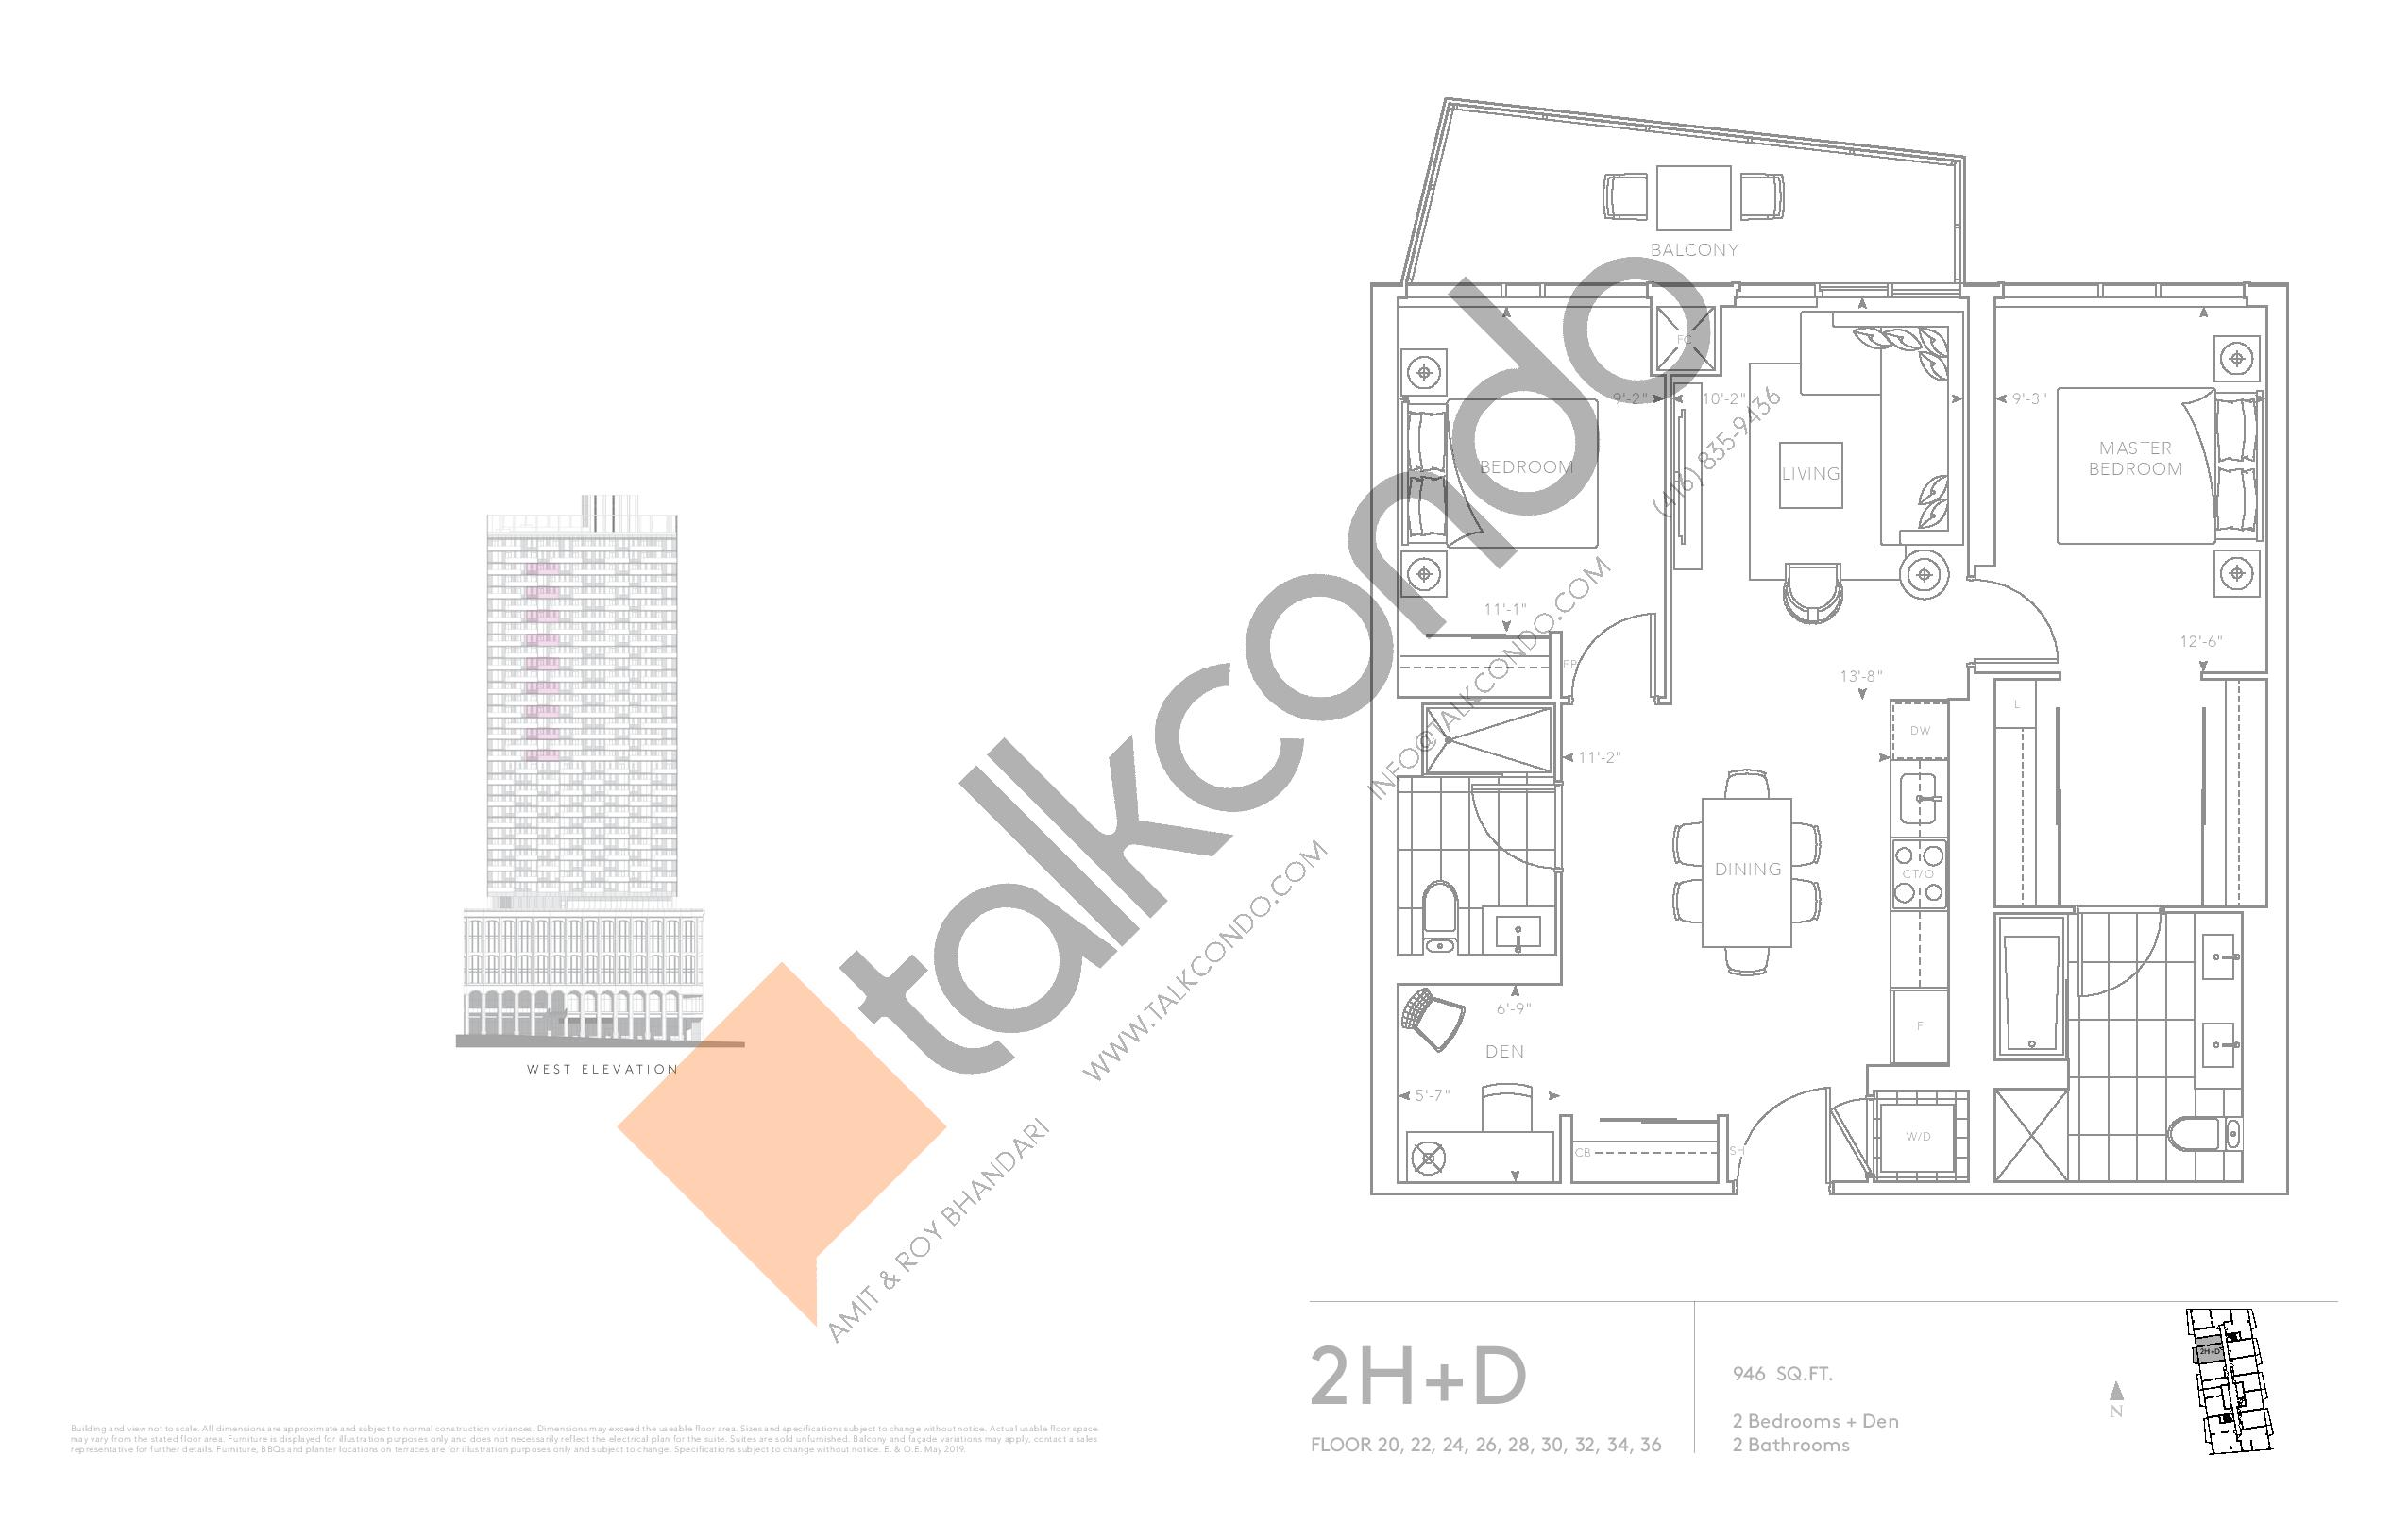 2H+D - Classic Series Floor Plan at Tridel at The Well Condos - 946 sq.ft